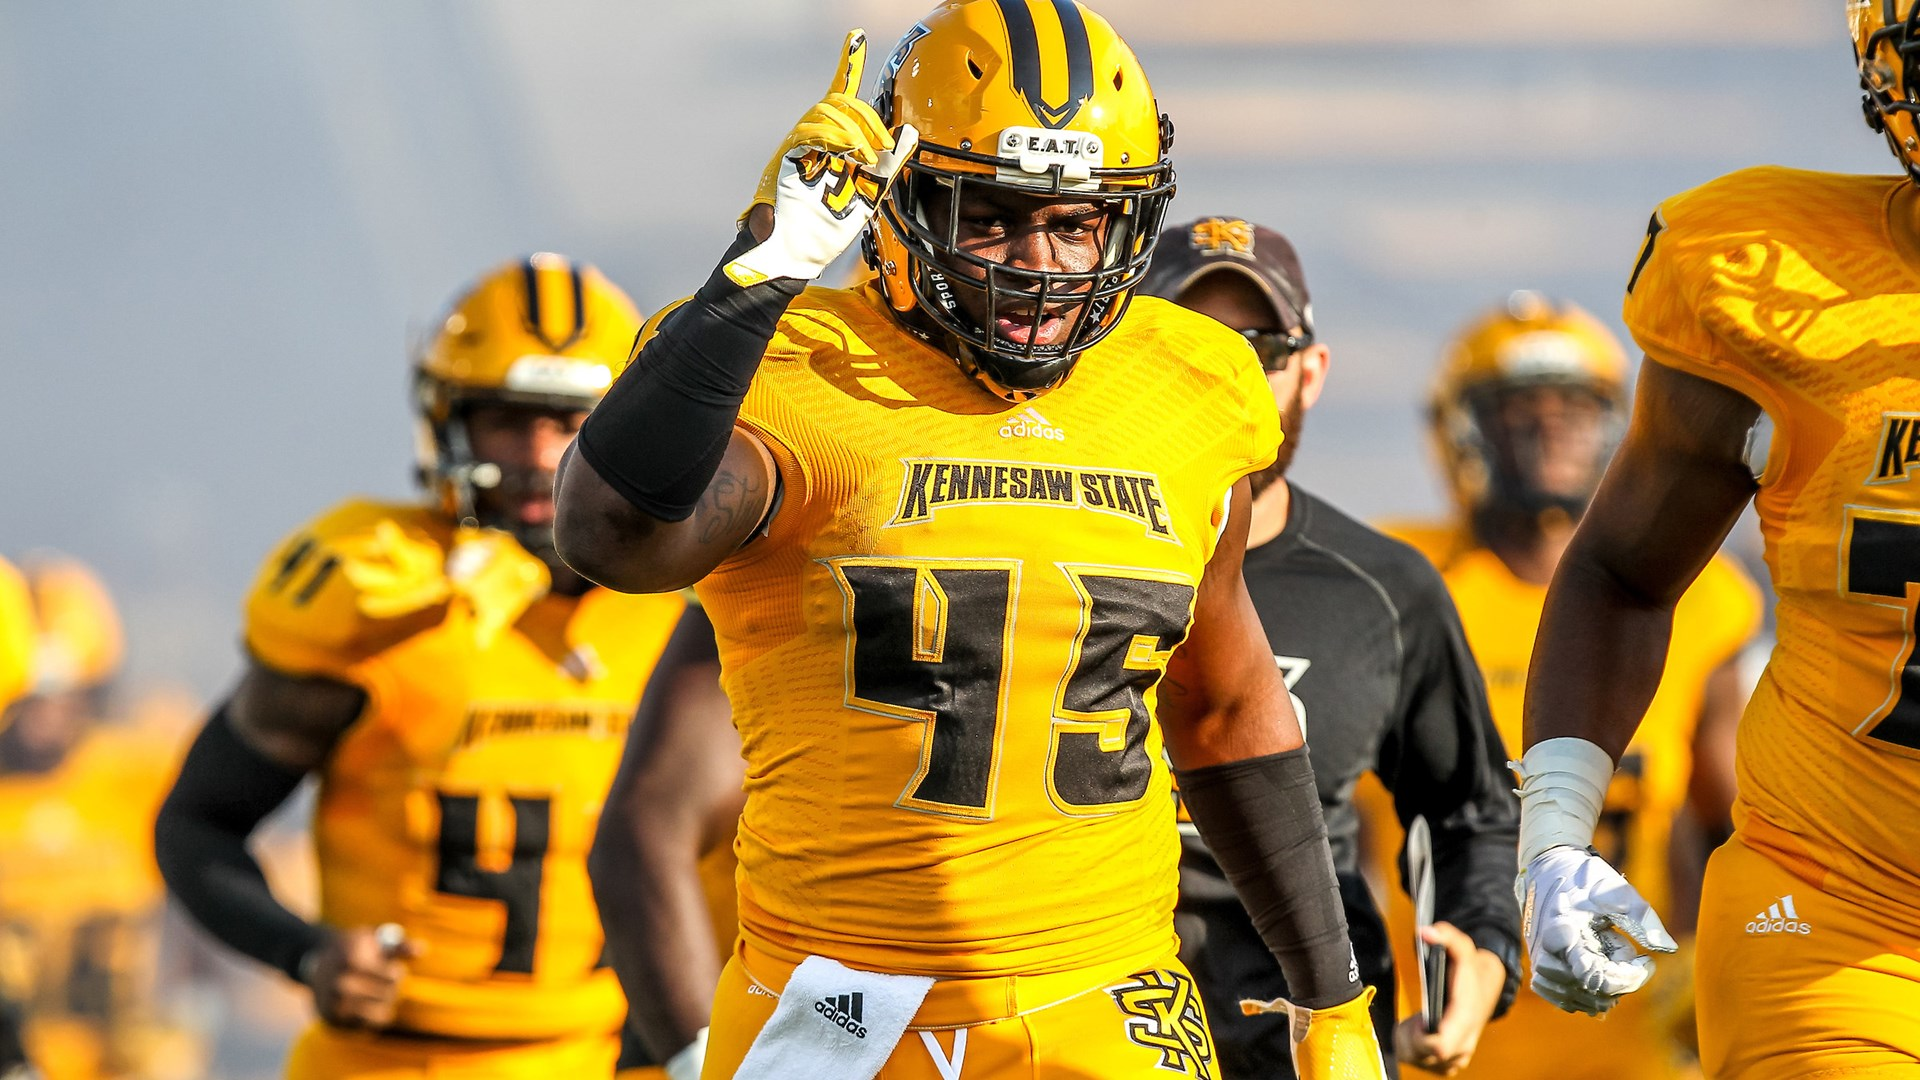 fcs football rankings: kennesaw state up to no. 2, james madison